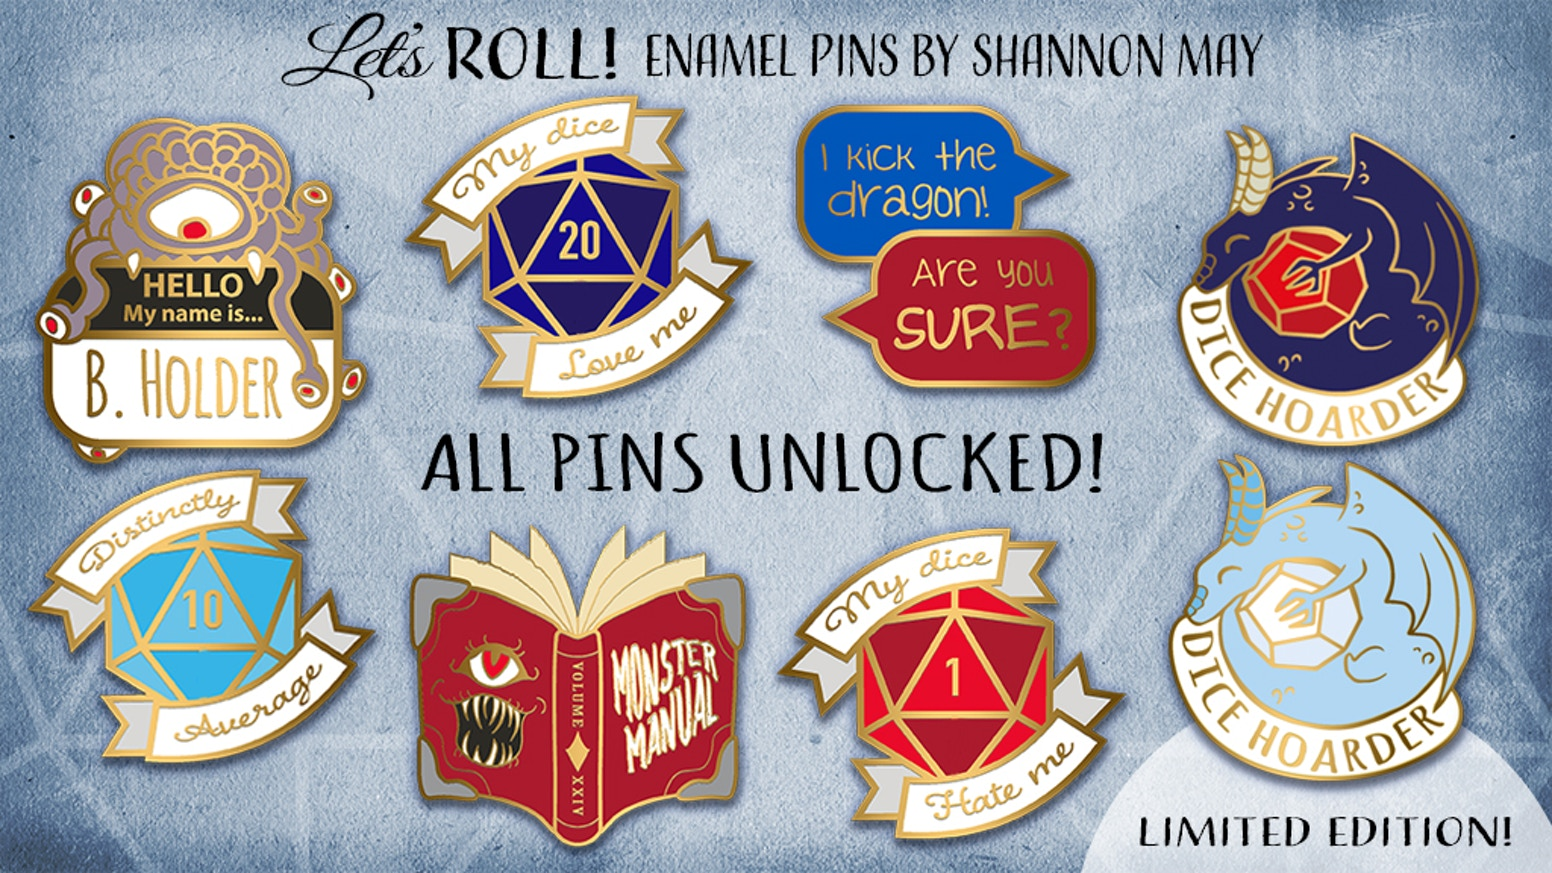 Tabletop RPG inspired hard enamel pins to complement your dungeon exploration - Dragons, monsters and dice abound!